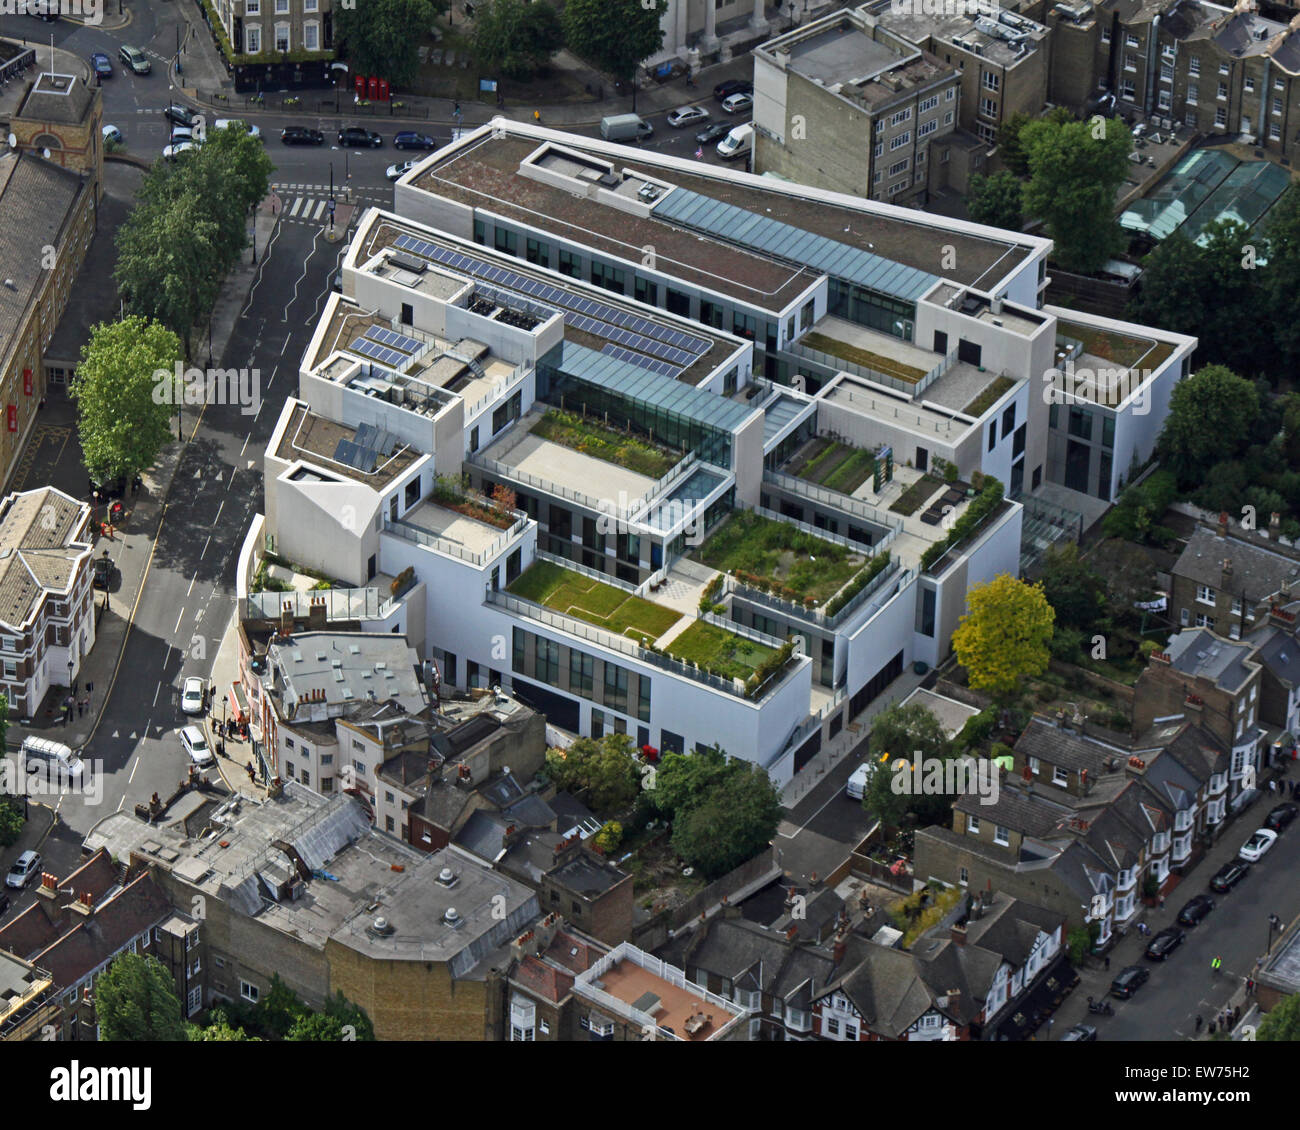 aerial view of University of Greenwich, Stockwell Street Library, Greenwich, London, UK - Stock Image